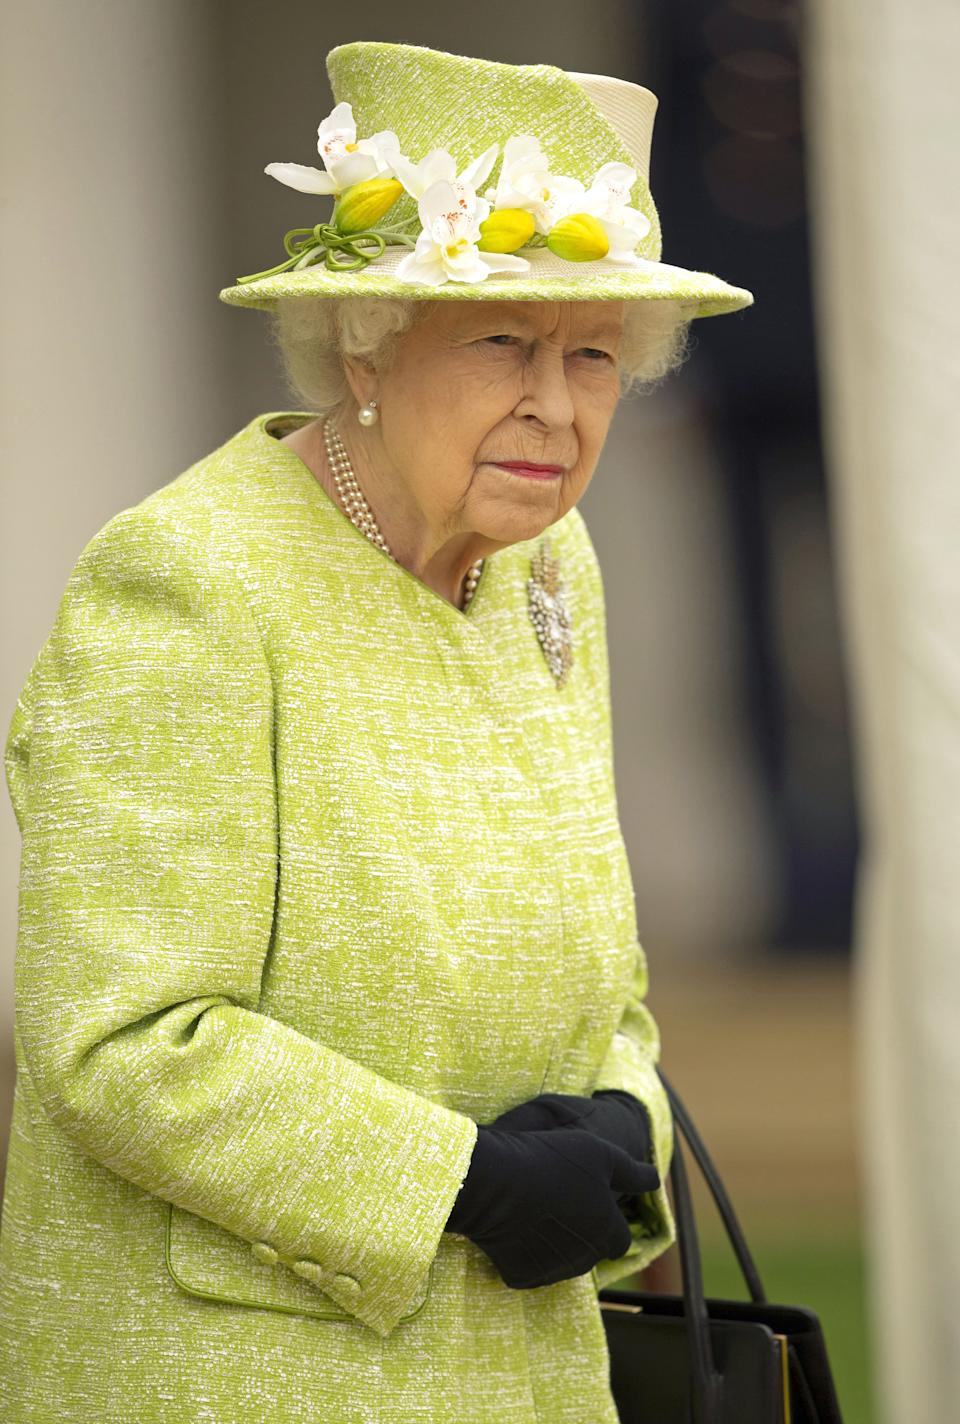 Queen Elizabeth II during a visit to the CWGC Air Forces Memorial in Runnymede, Surrey, to attend a service to mark the Centenary of the Royal Australian Air Force. Picture date: Wednesday March 31, 2021.